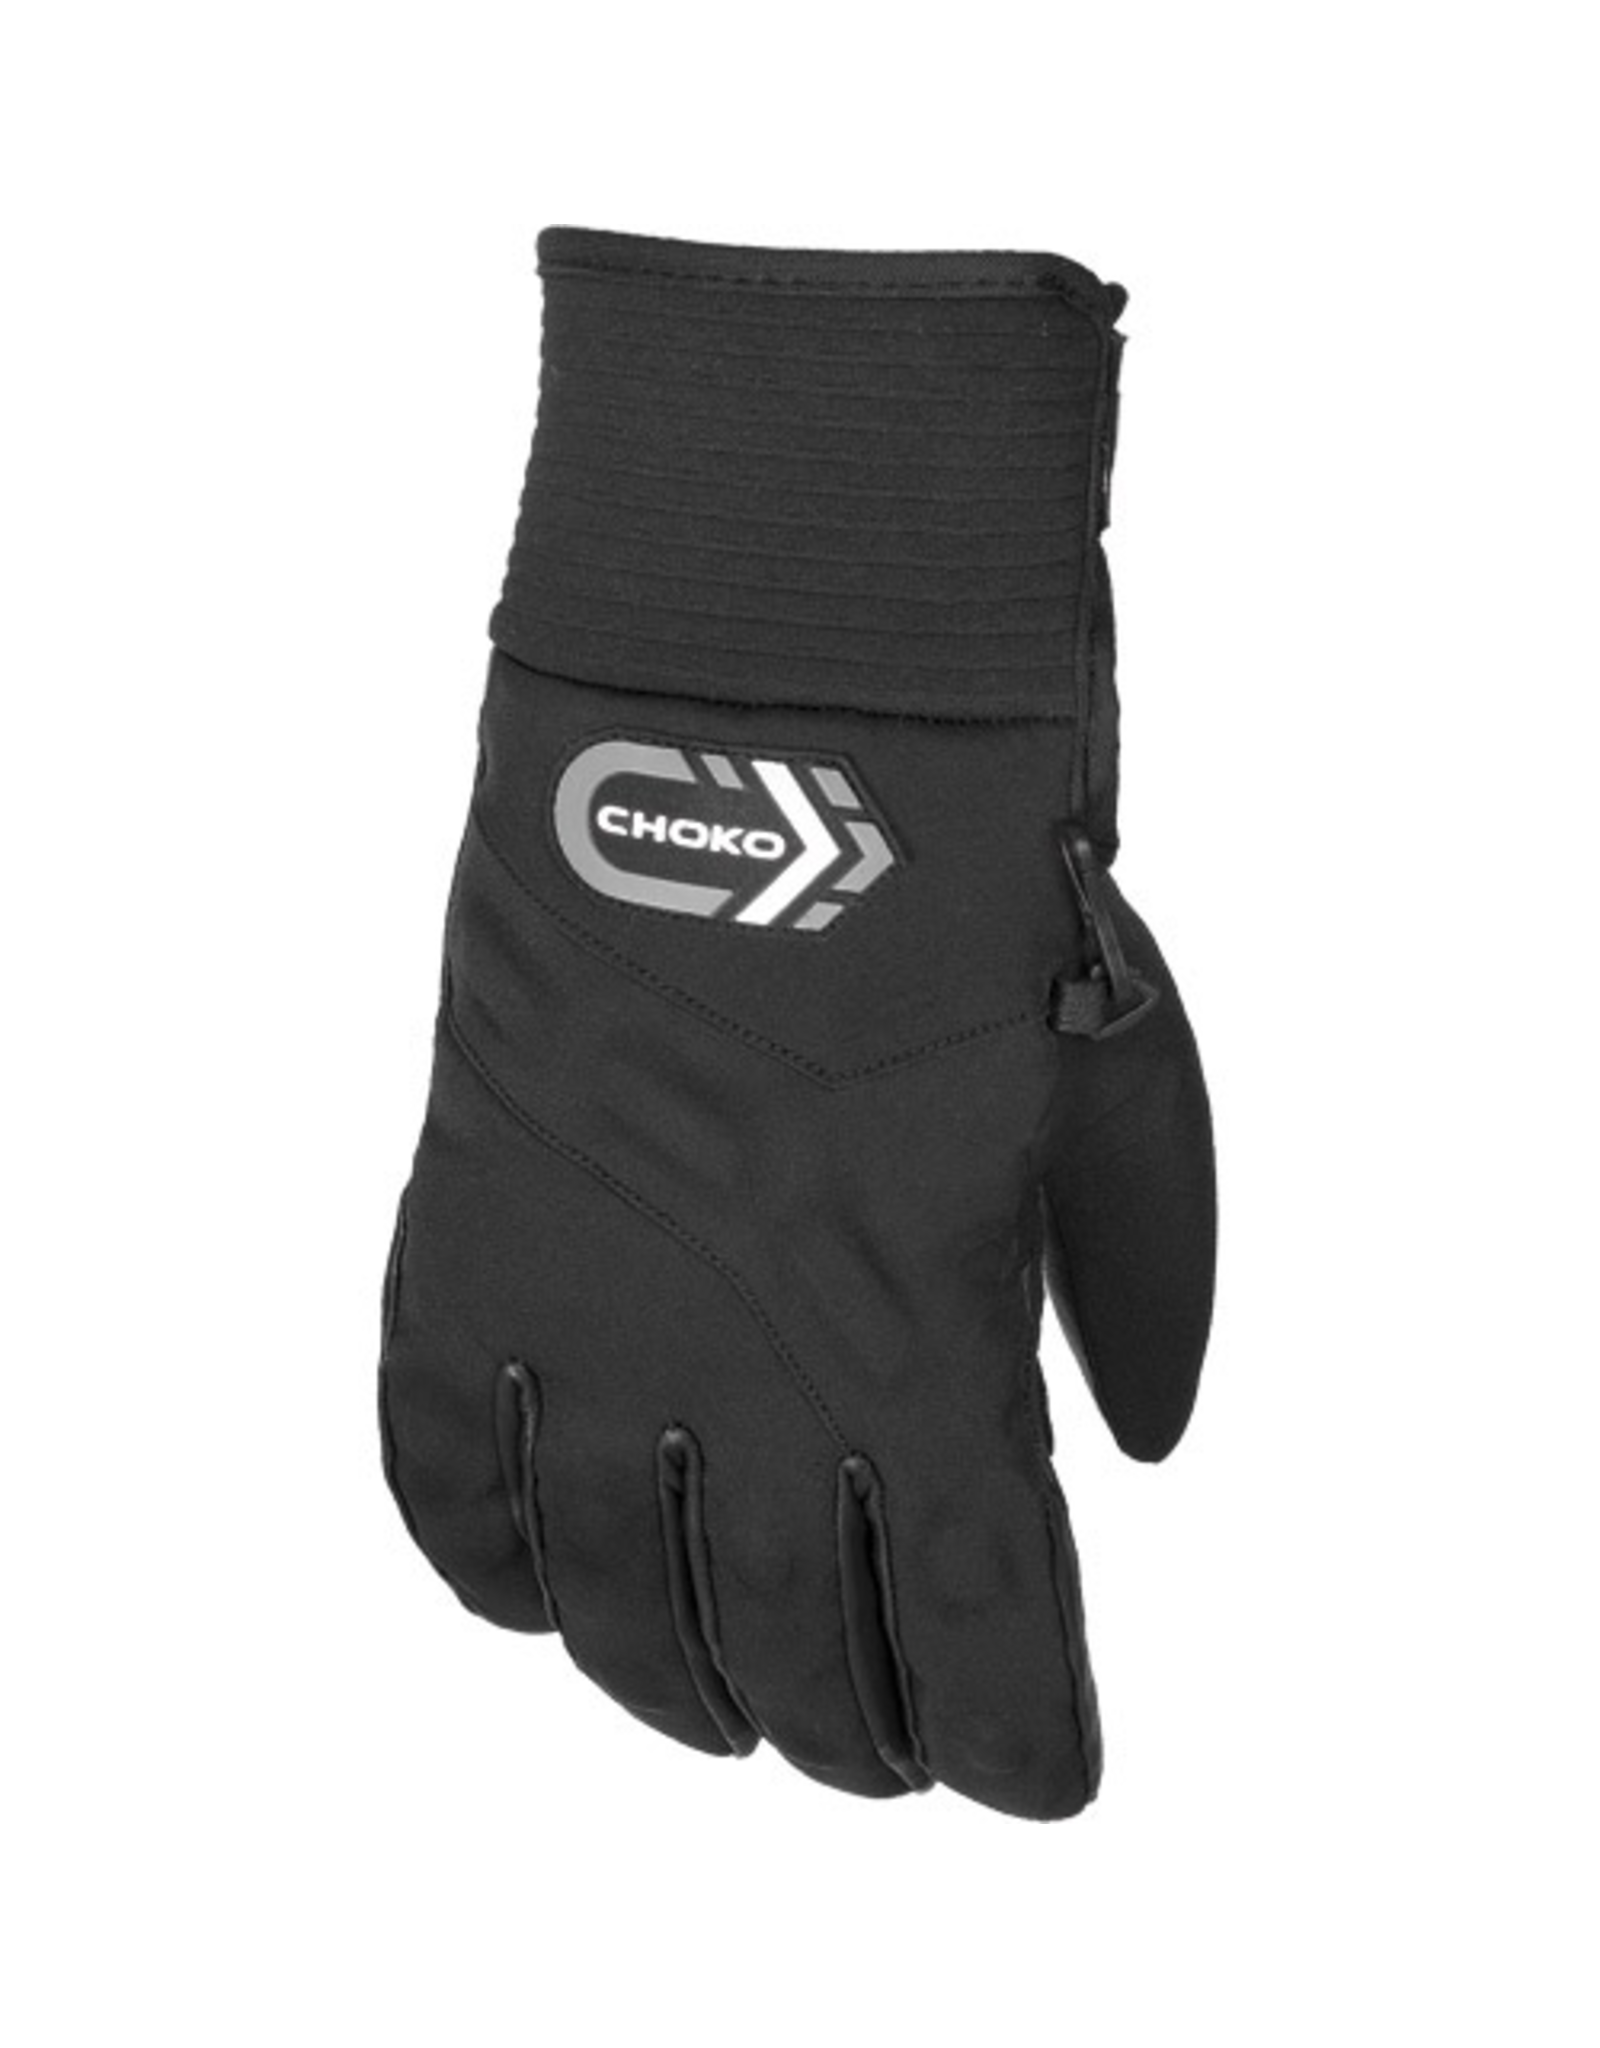 Choko Choko Mountain Leather/ Nylon Gloves